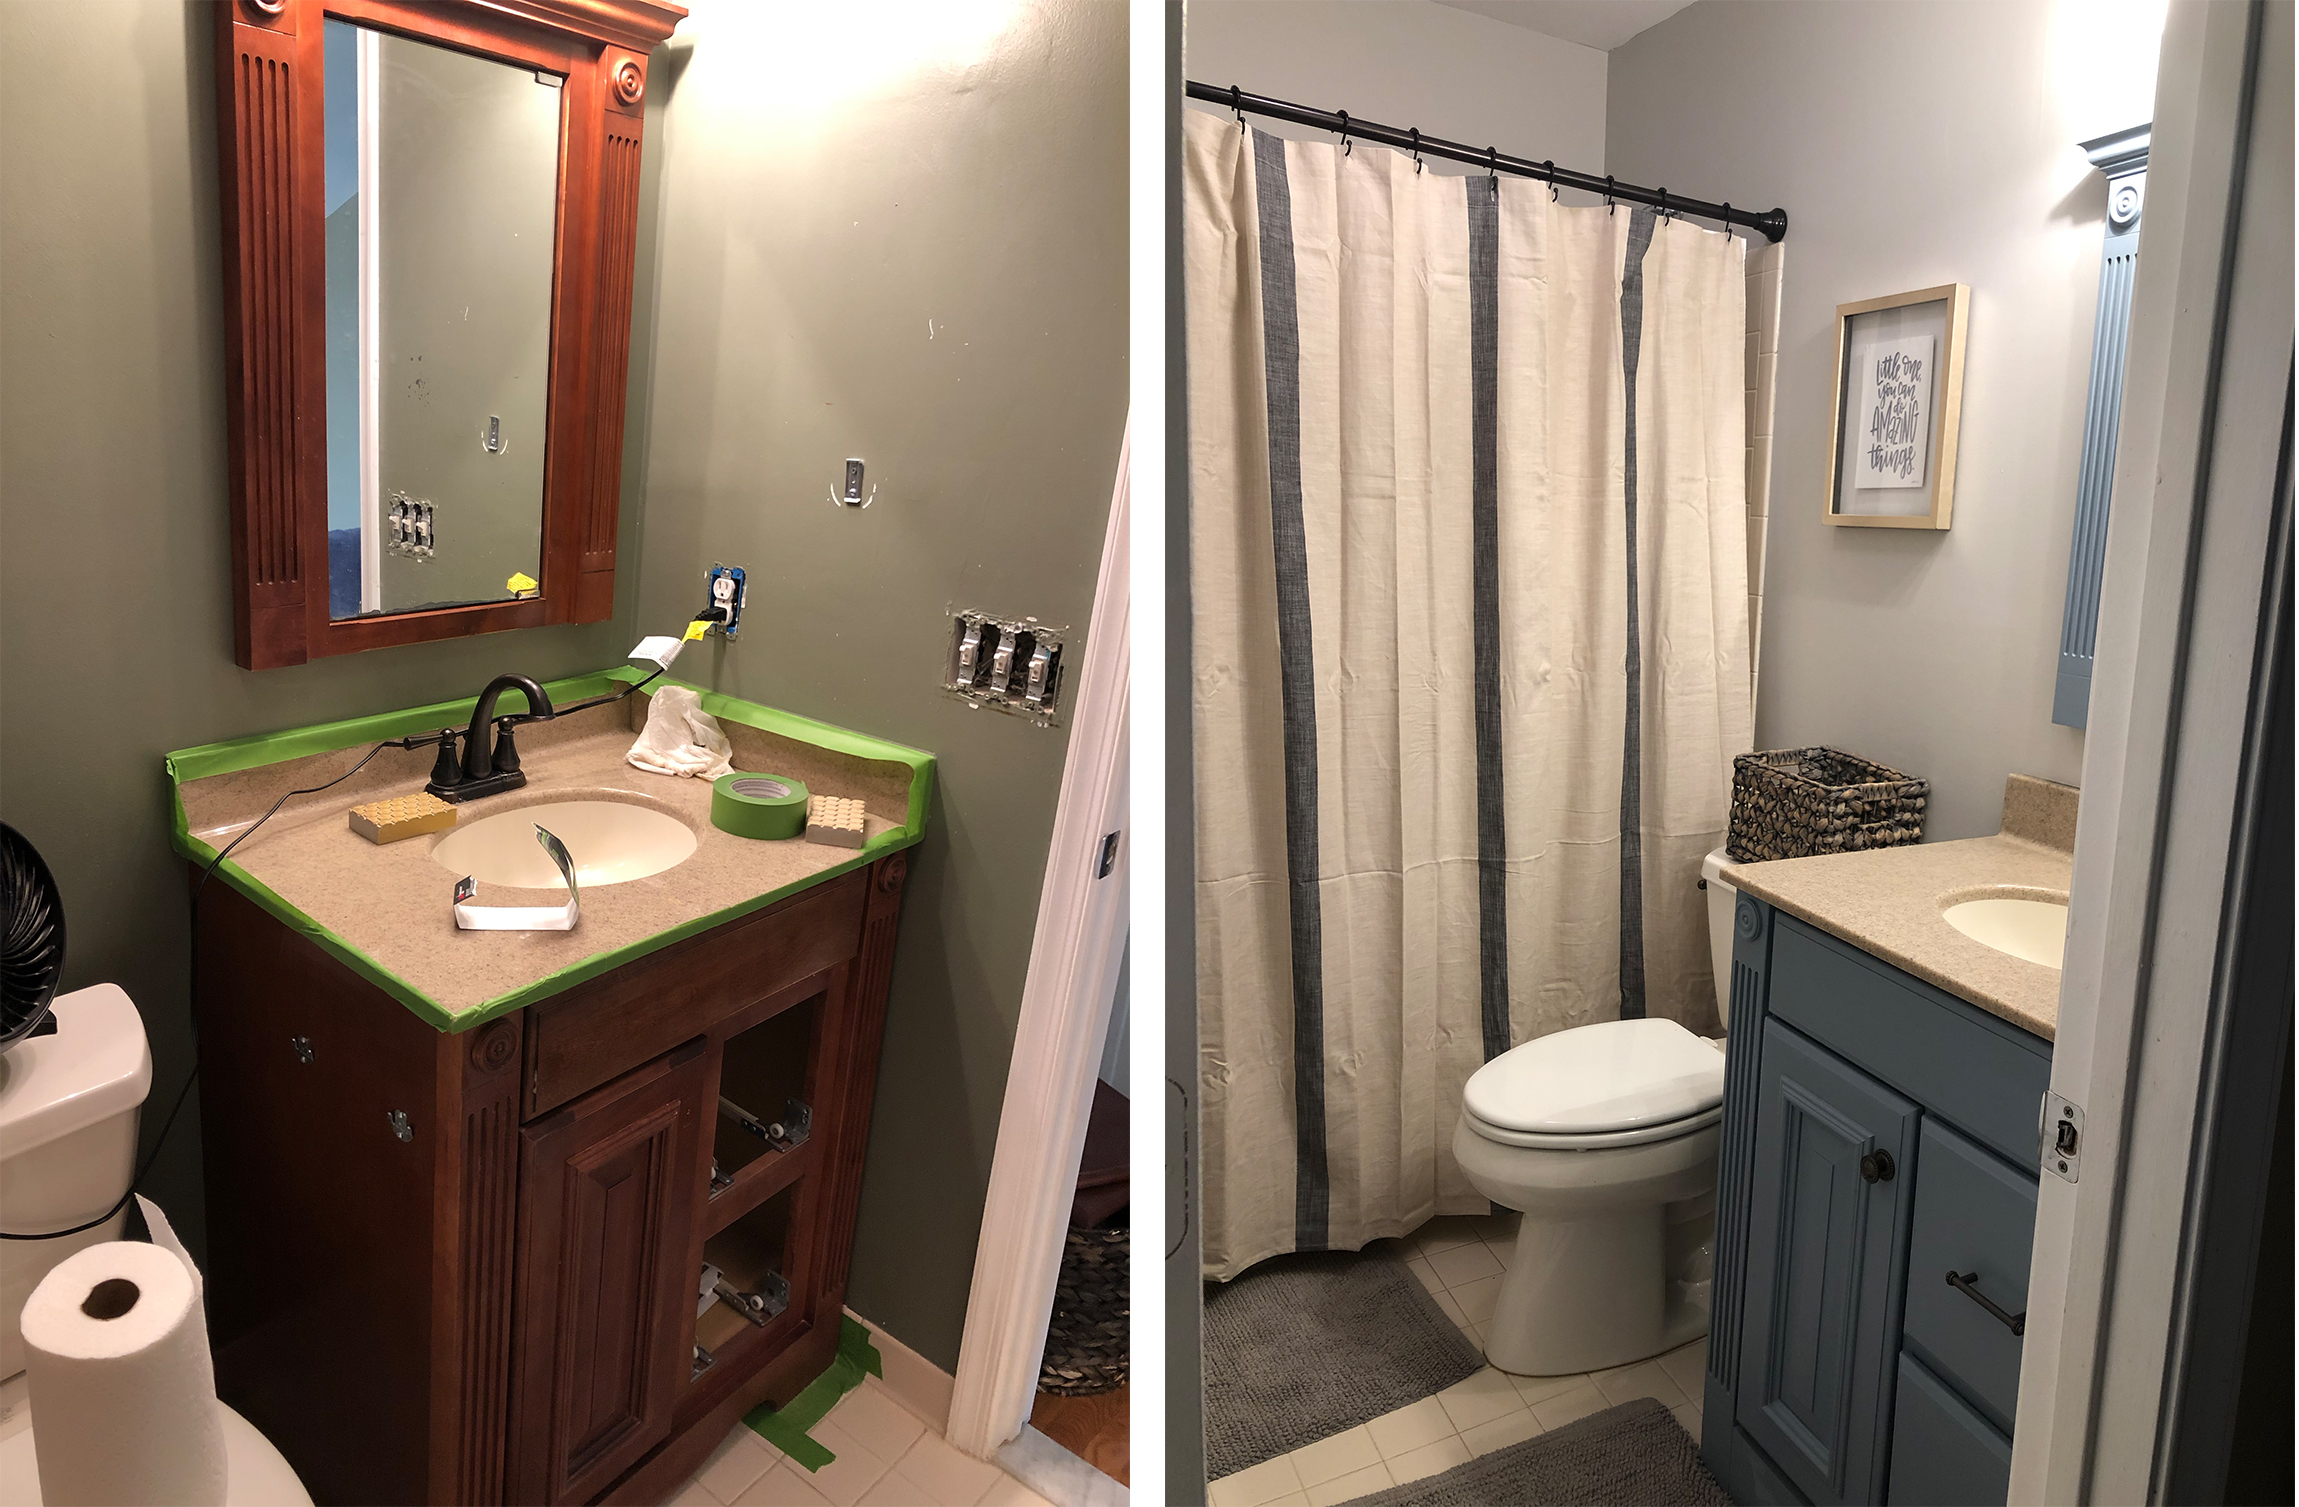 The kid's bathroom - this poor bathroom was stuck in the '90s - I upgraded her like Beyonce.